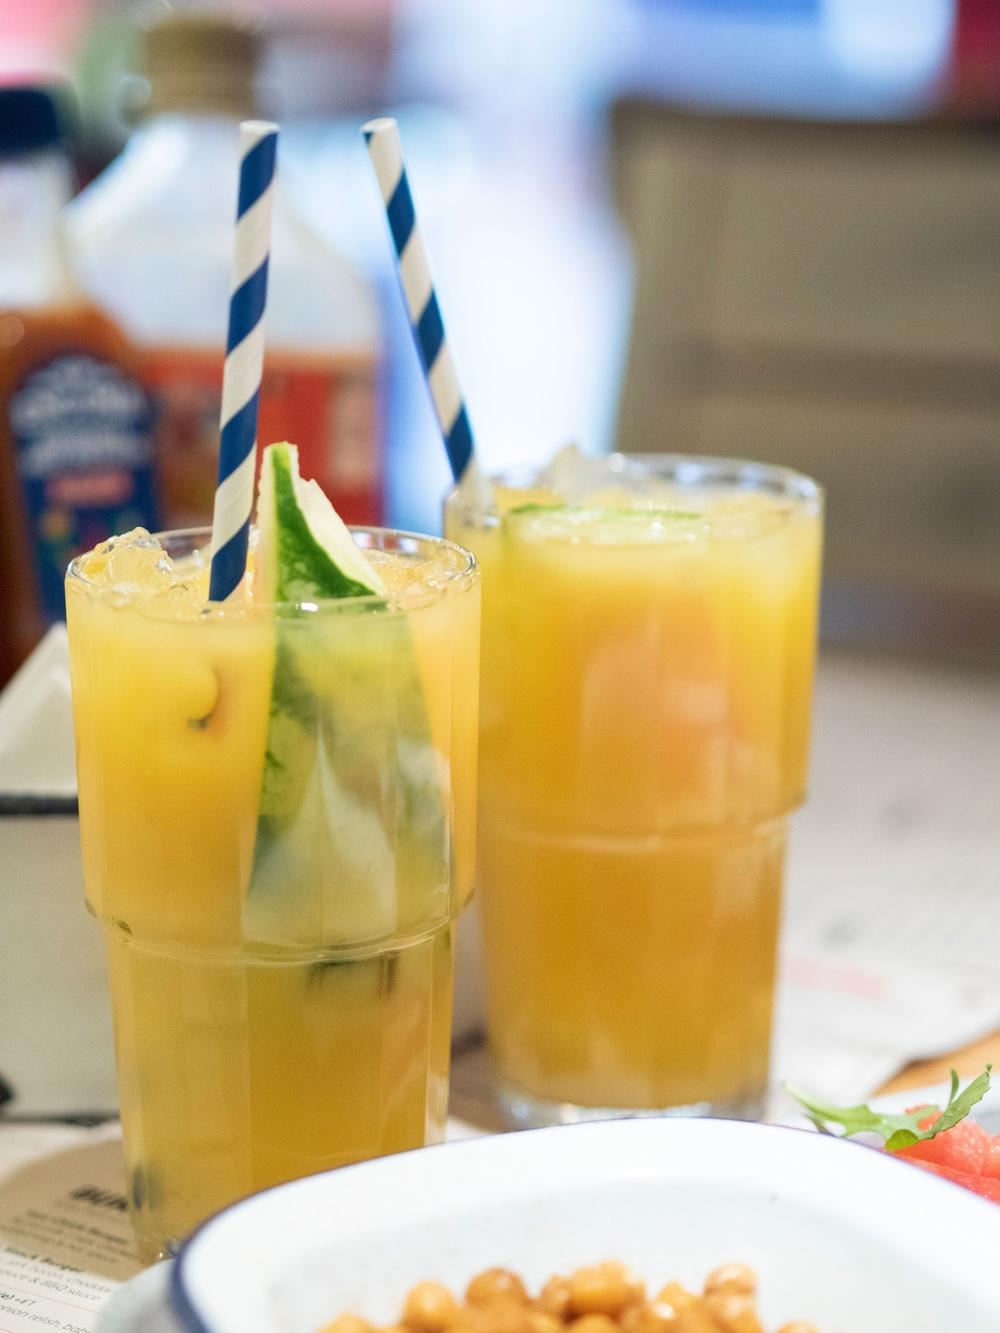 Two mango and passionfruit cocktails in tall glasses decorated with blue and white stripey straws and slices of melon.